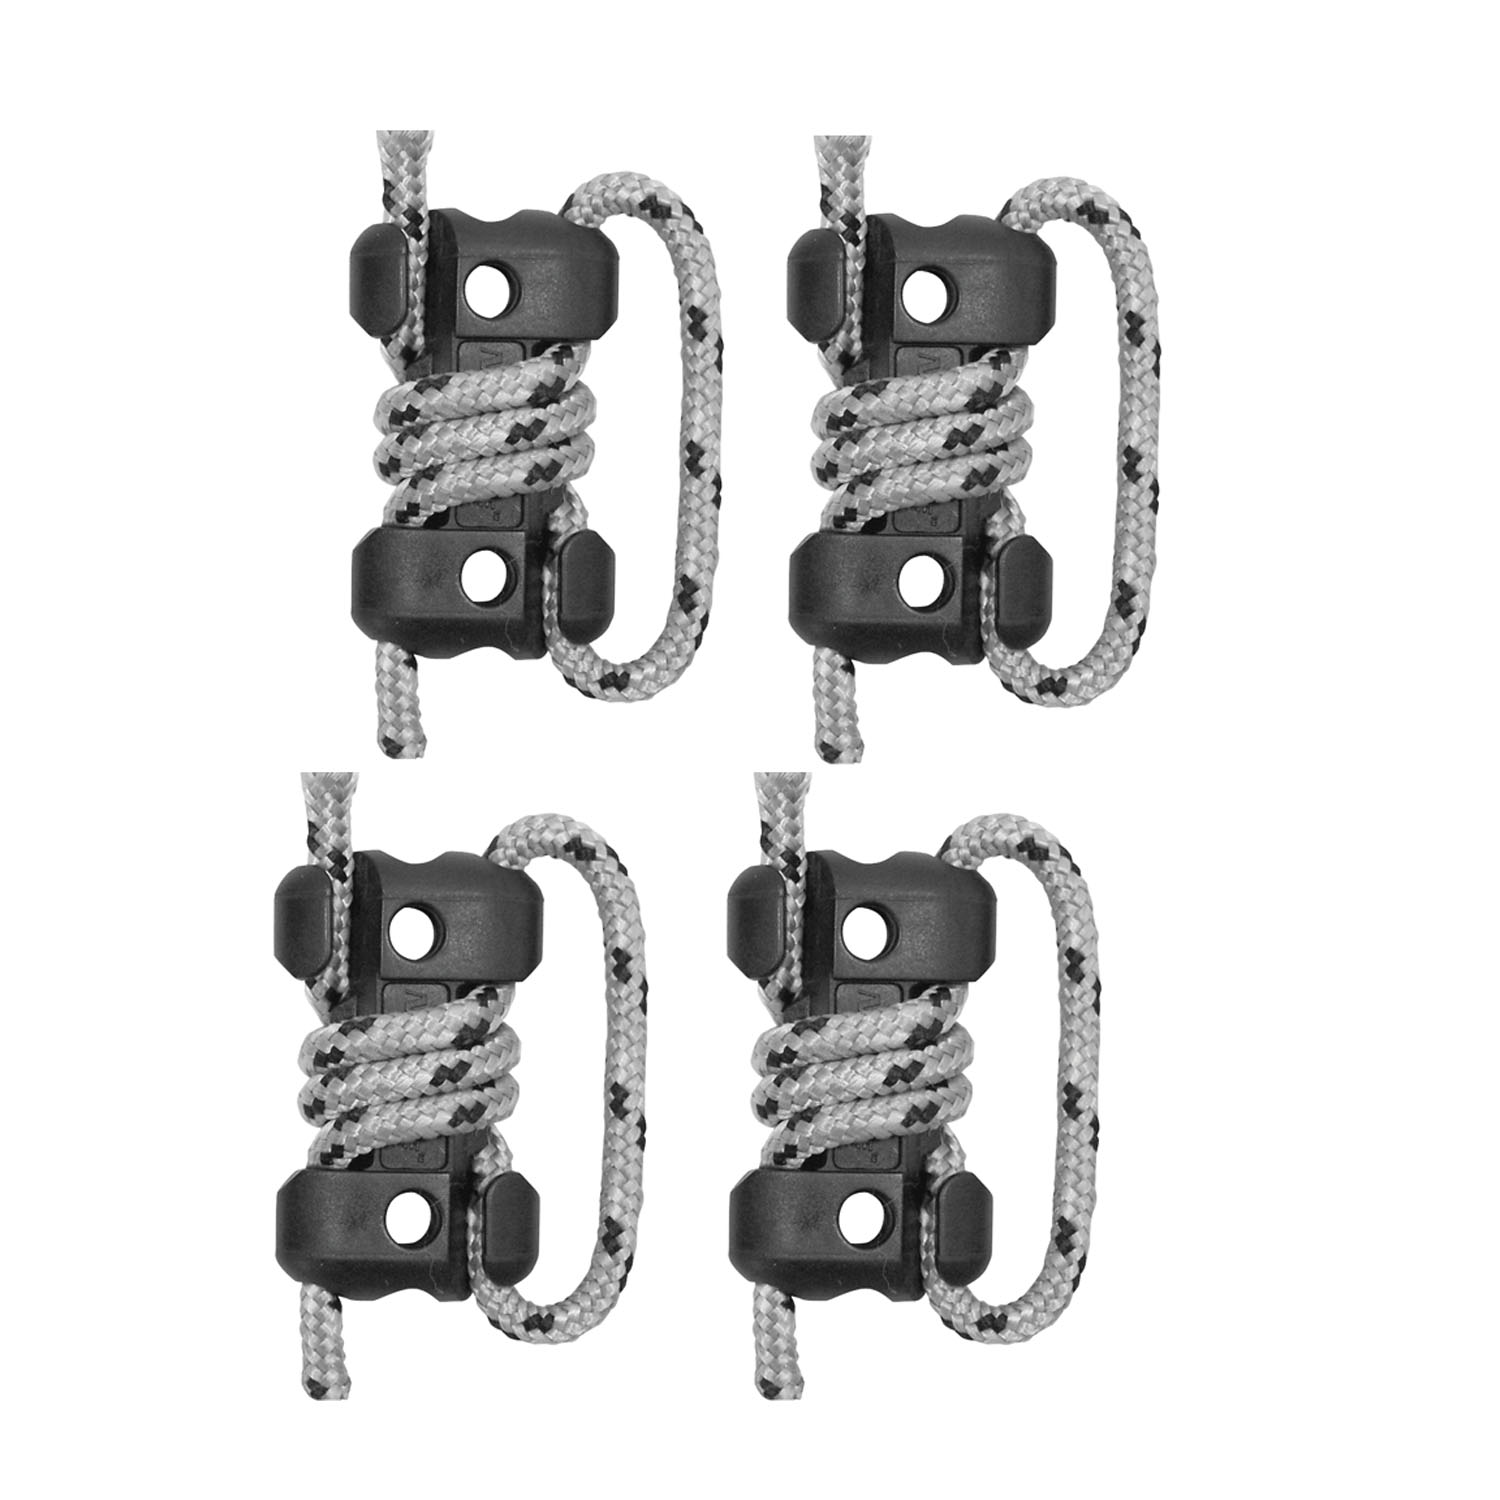 Nite Ize KnotBone Num 3 Knot Replacement - 4 Pack w/25' Section of Cord at Sears.com